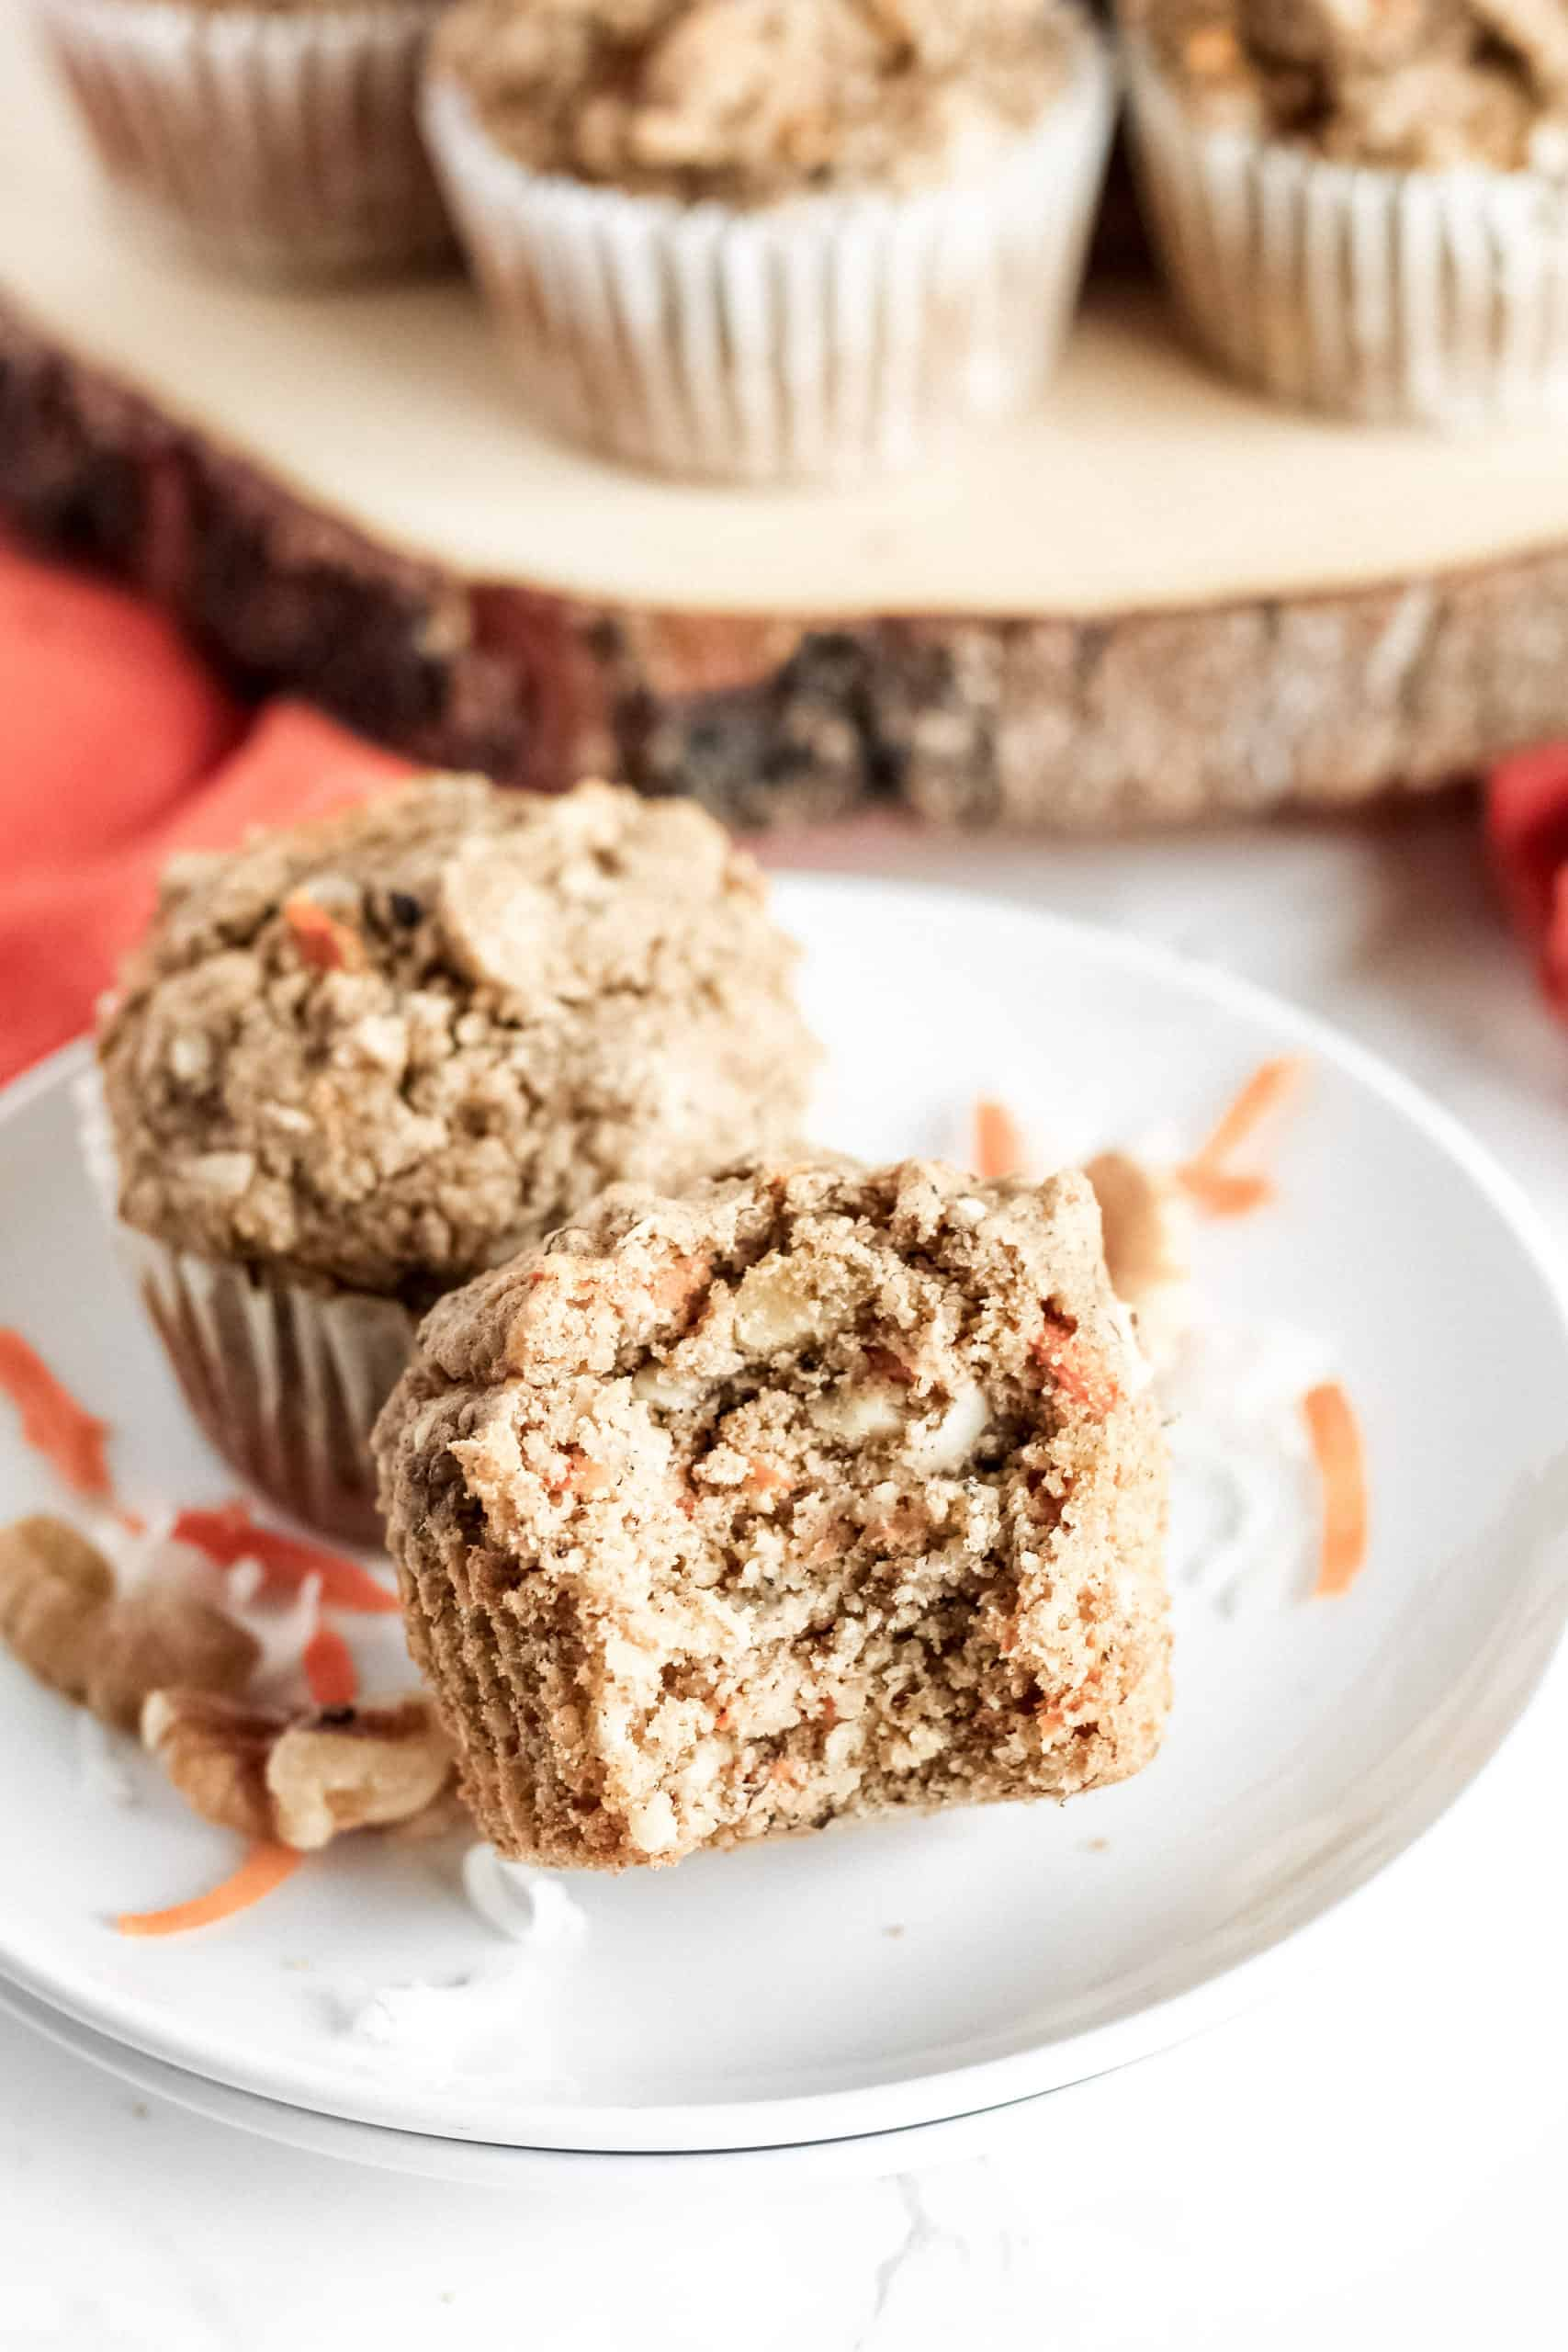 two muffins on a plate with a bite taken out